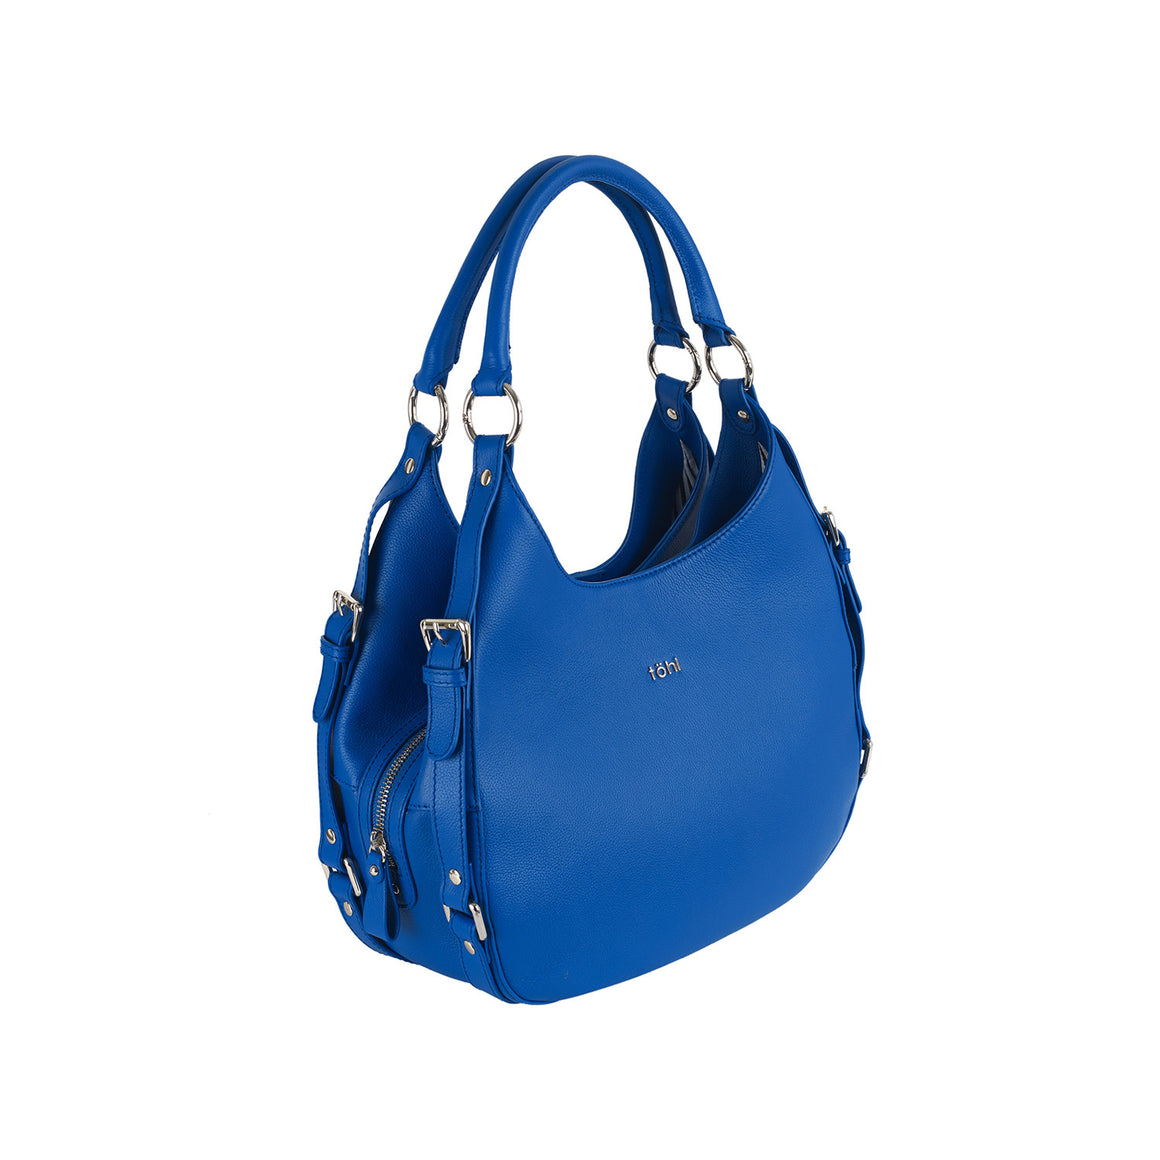 SB 0016 - TOHL KAIA WOMEN'S SHOULDER BAG - COBALT BLUE